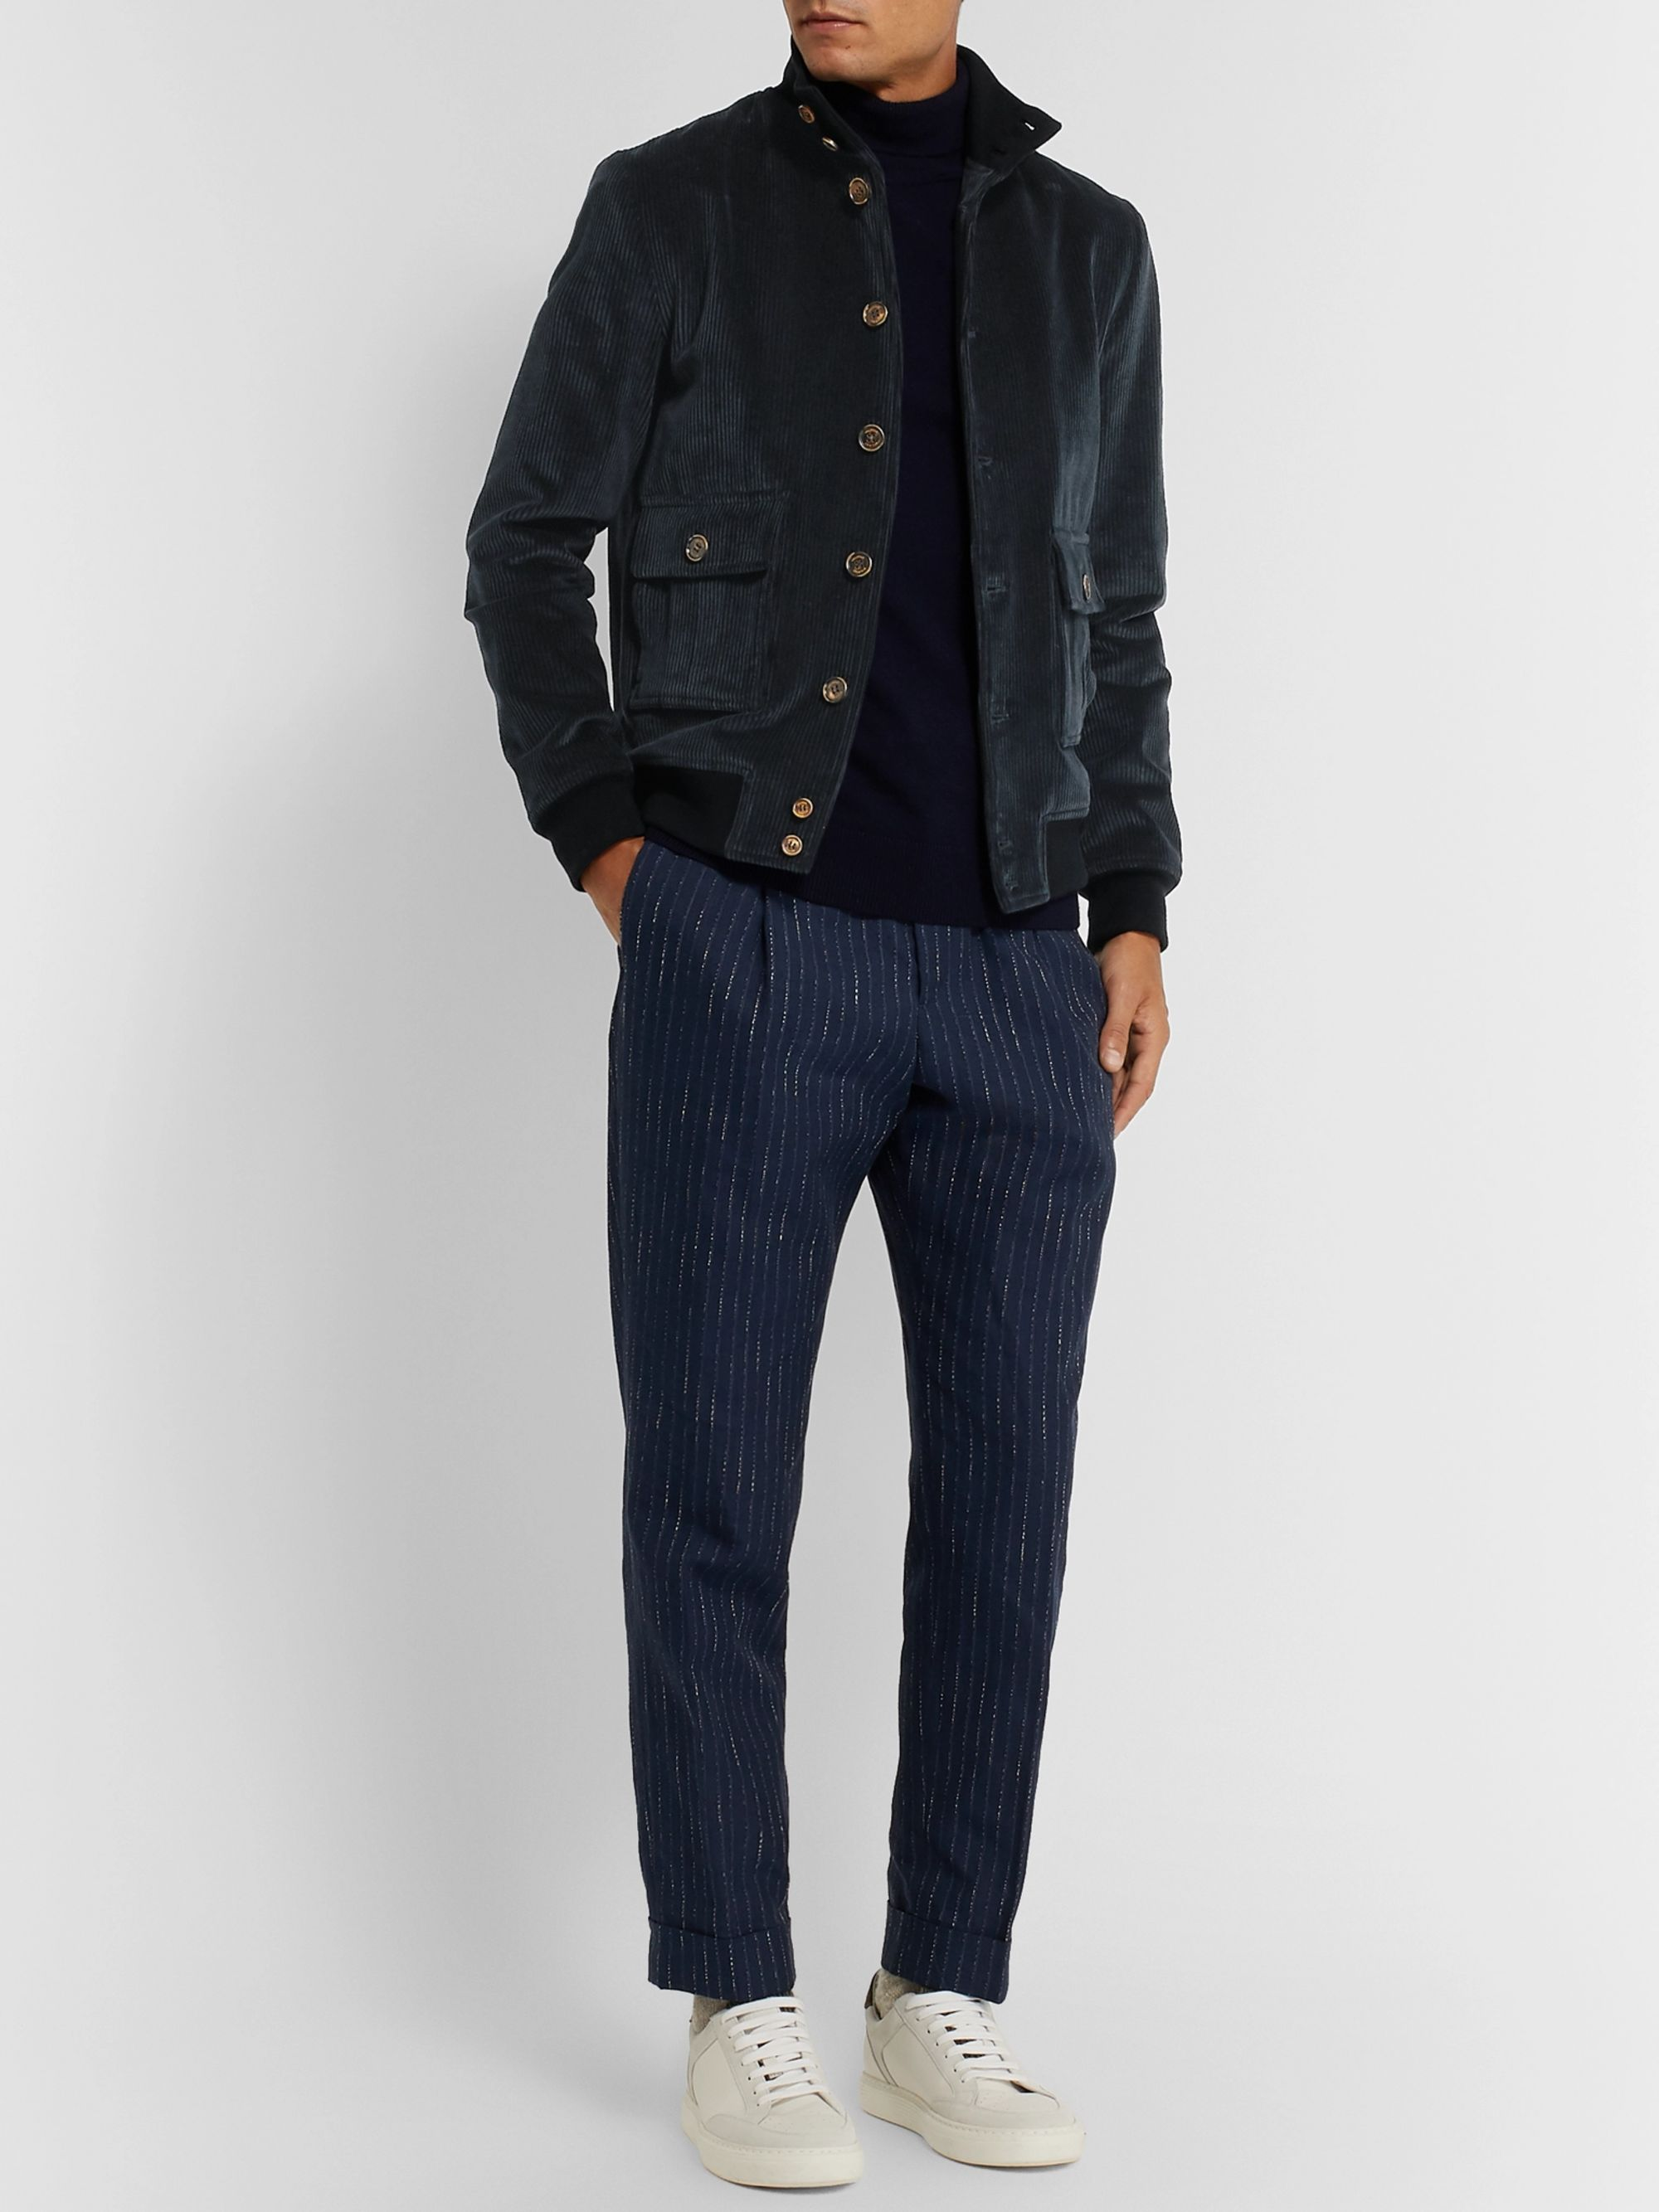 Valstar Valstarino Slim-Fit Cotton-Blend Corduroy Bomber Jacket